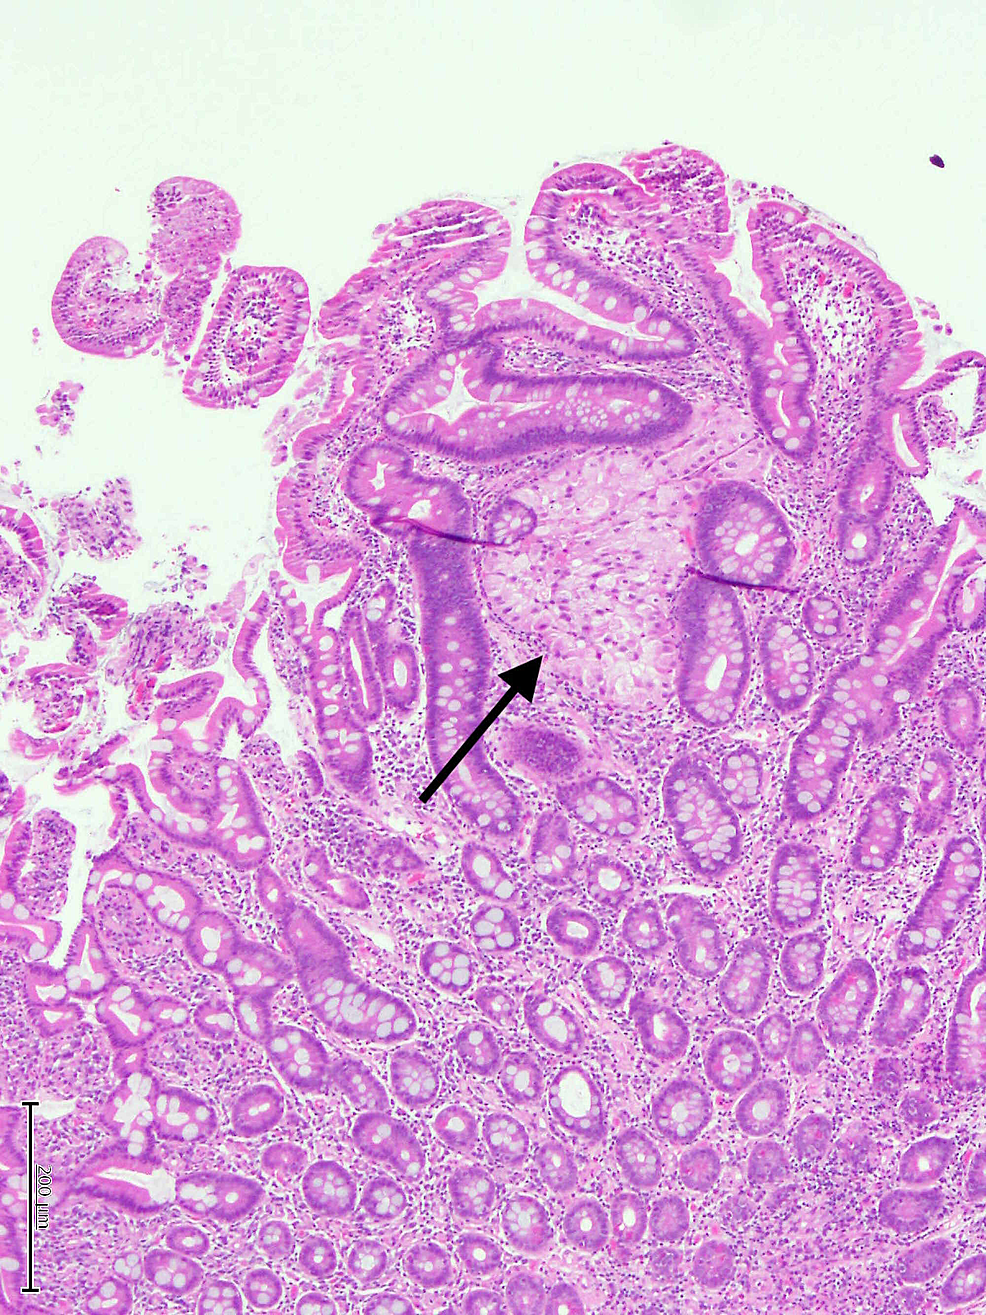 Hematoxylin-and-Eosin-stain-showing-a-focus-of-metastatic-chromophobe-RCC-involving-laminal-propria-of-small-bowel-mucosa-(arrow).